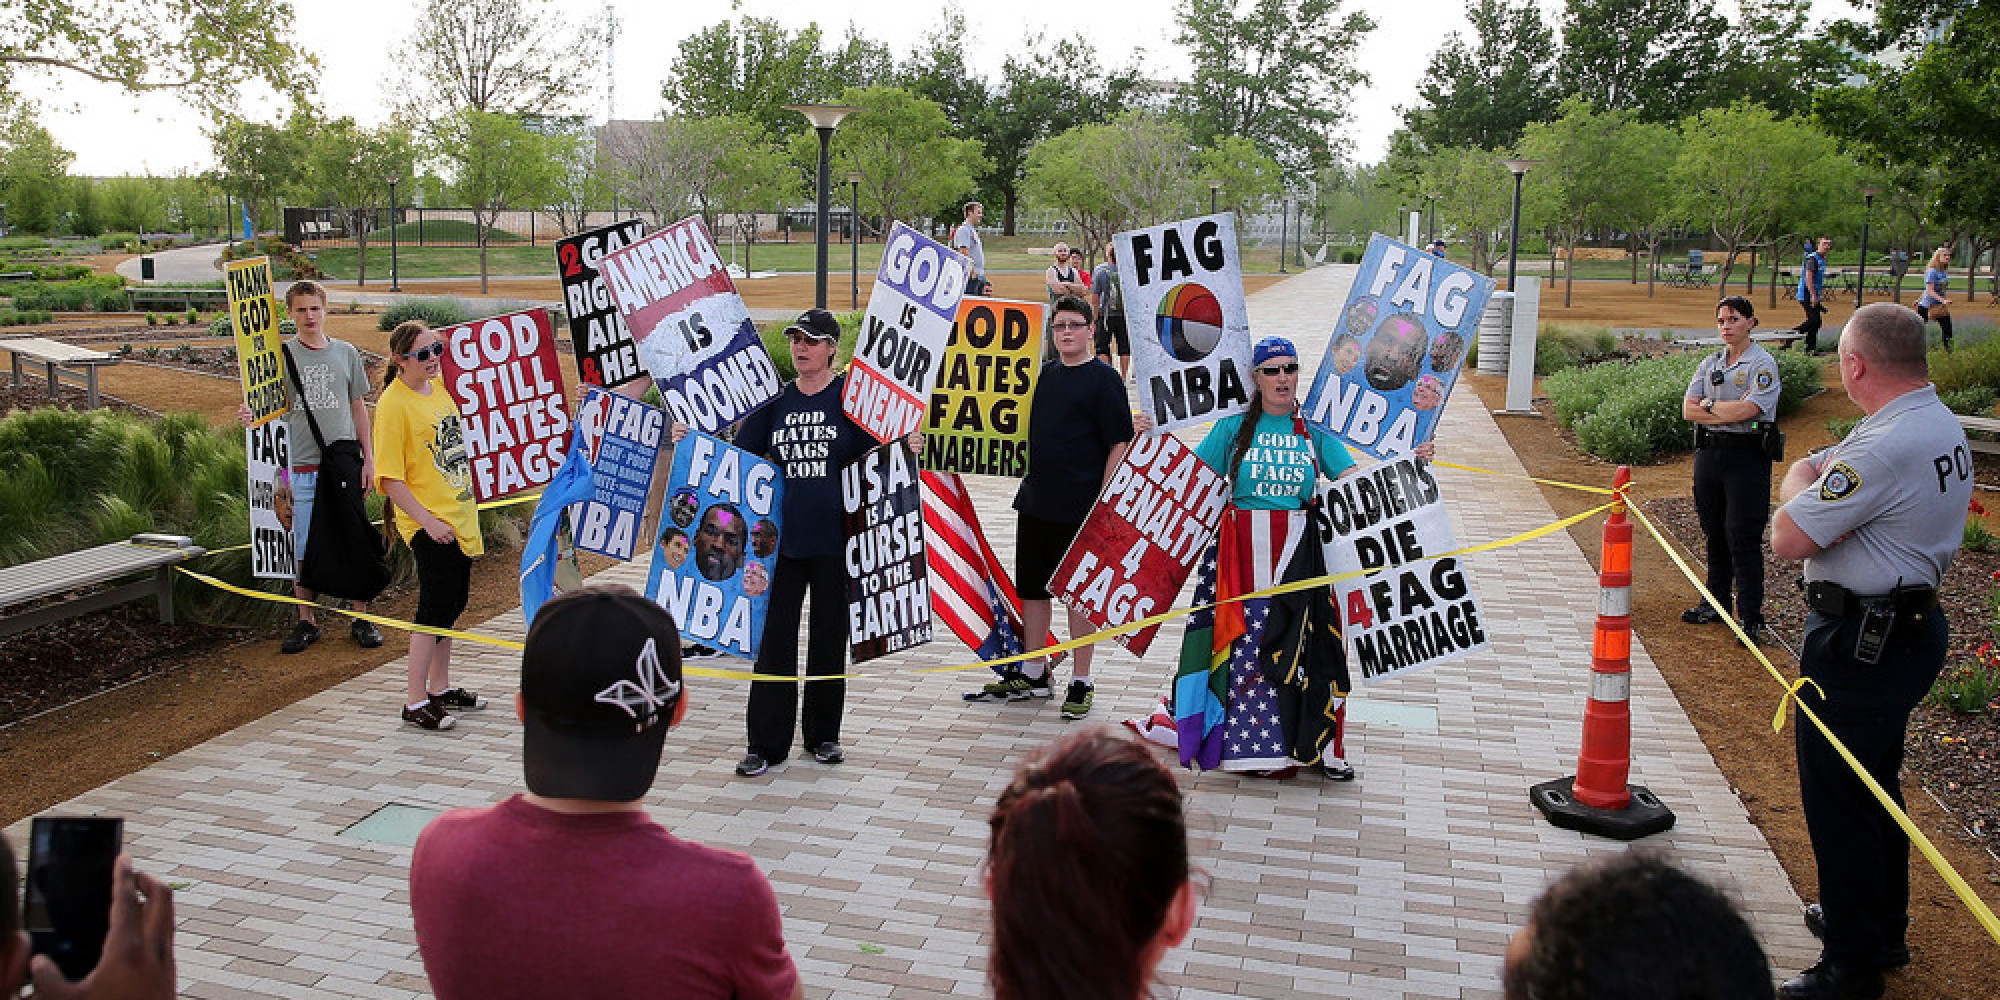 the rights of the westboro baptist church Panic at the disco turn westboro baptist protest into charity drive the hate group recently protested vegas band's concert in kansas city, missouri.